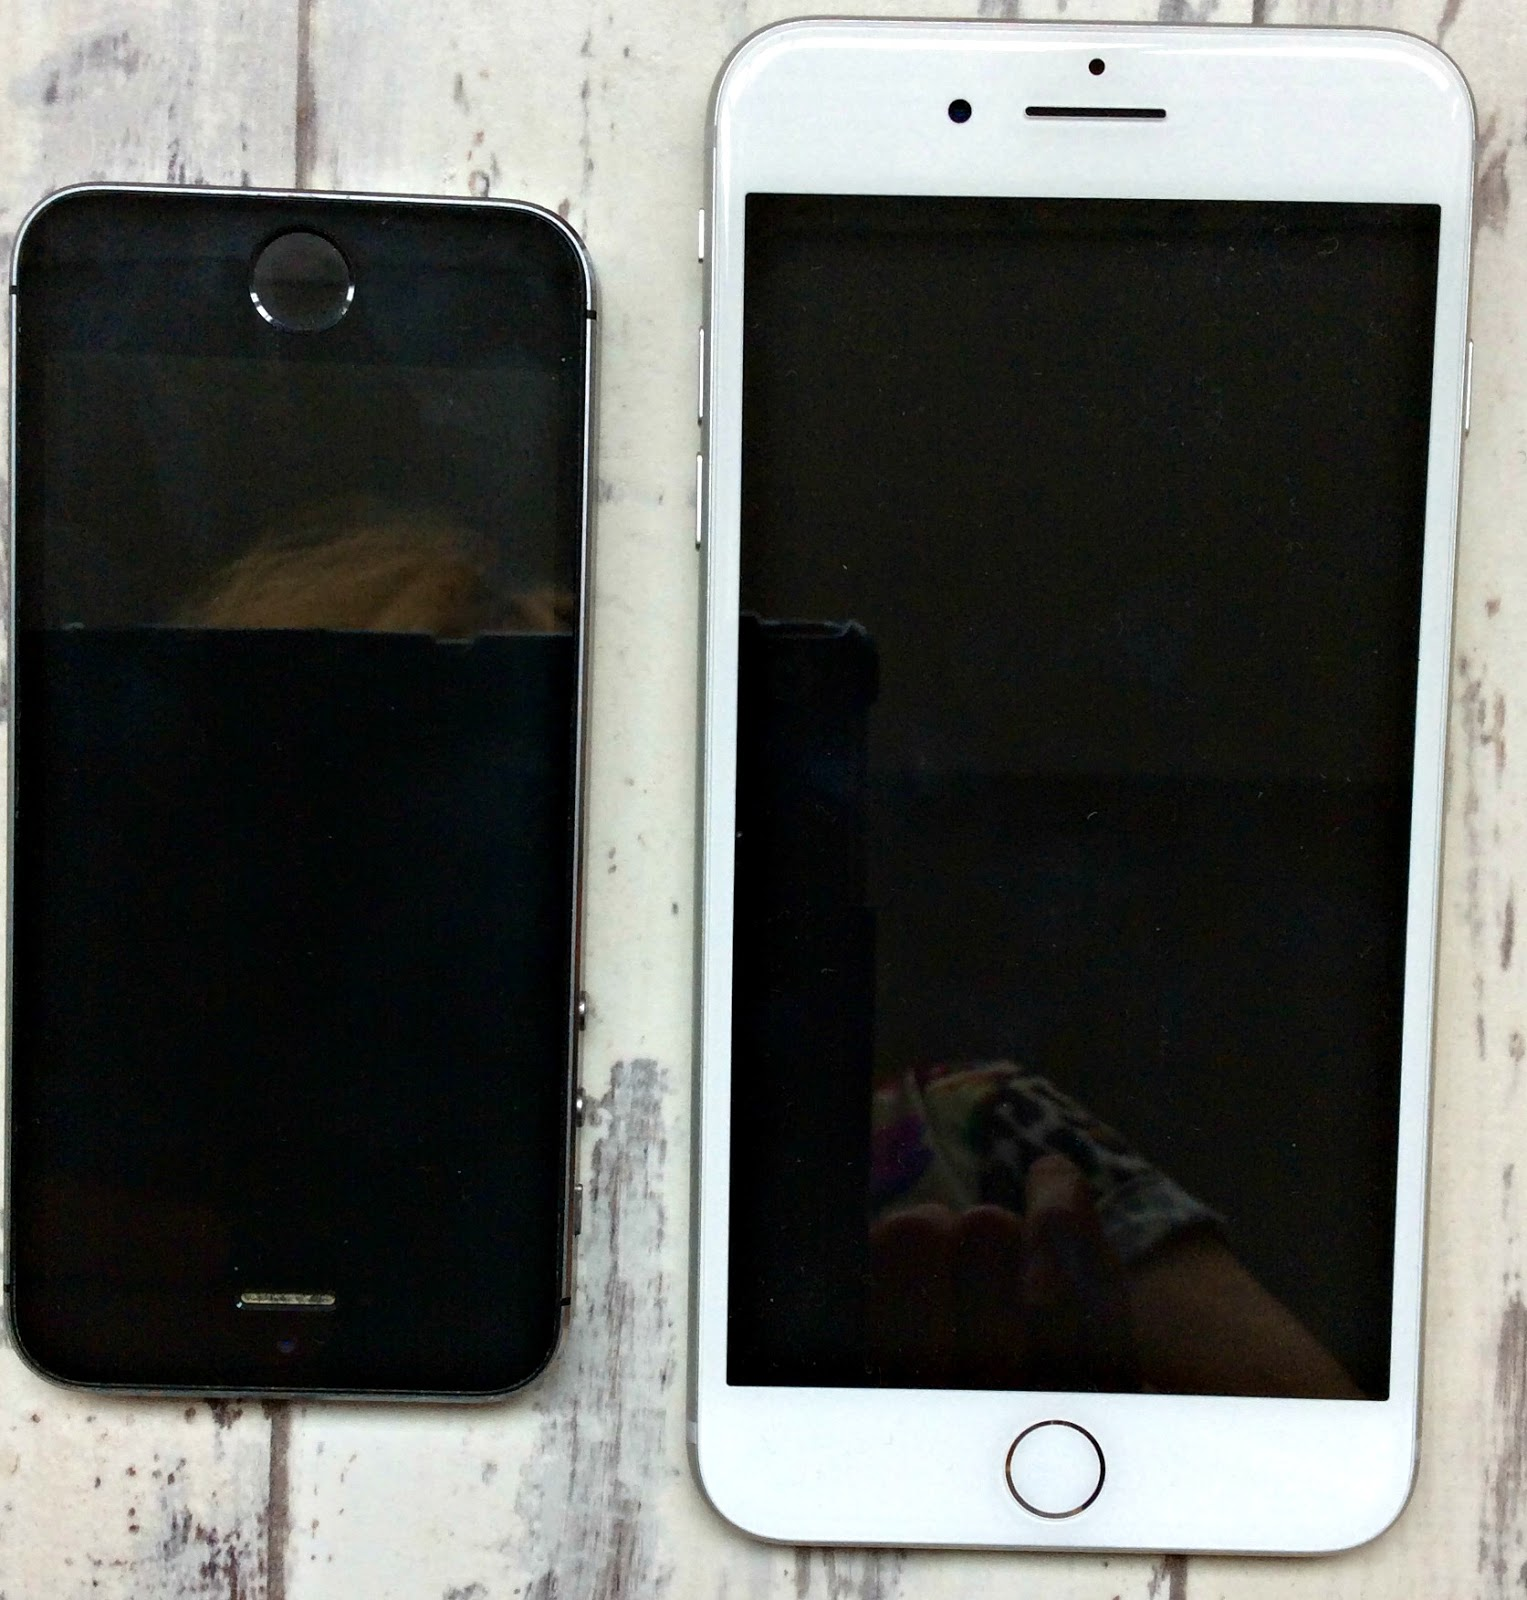 The iPhone 7 Plus next to the iPhone 5s